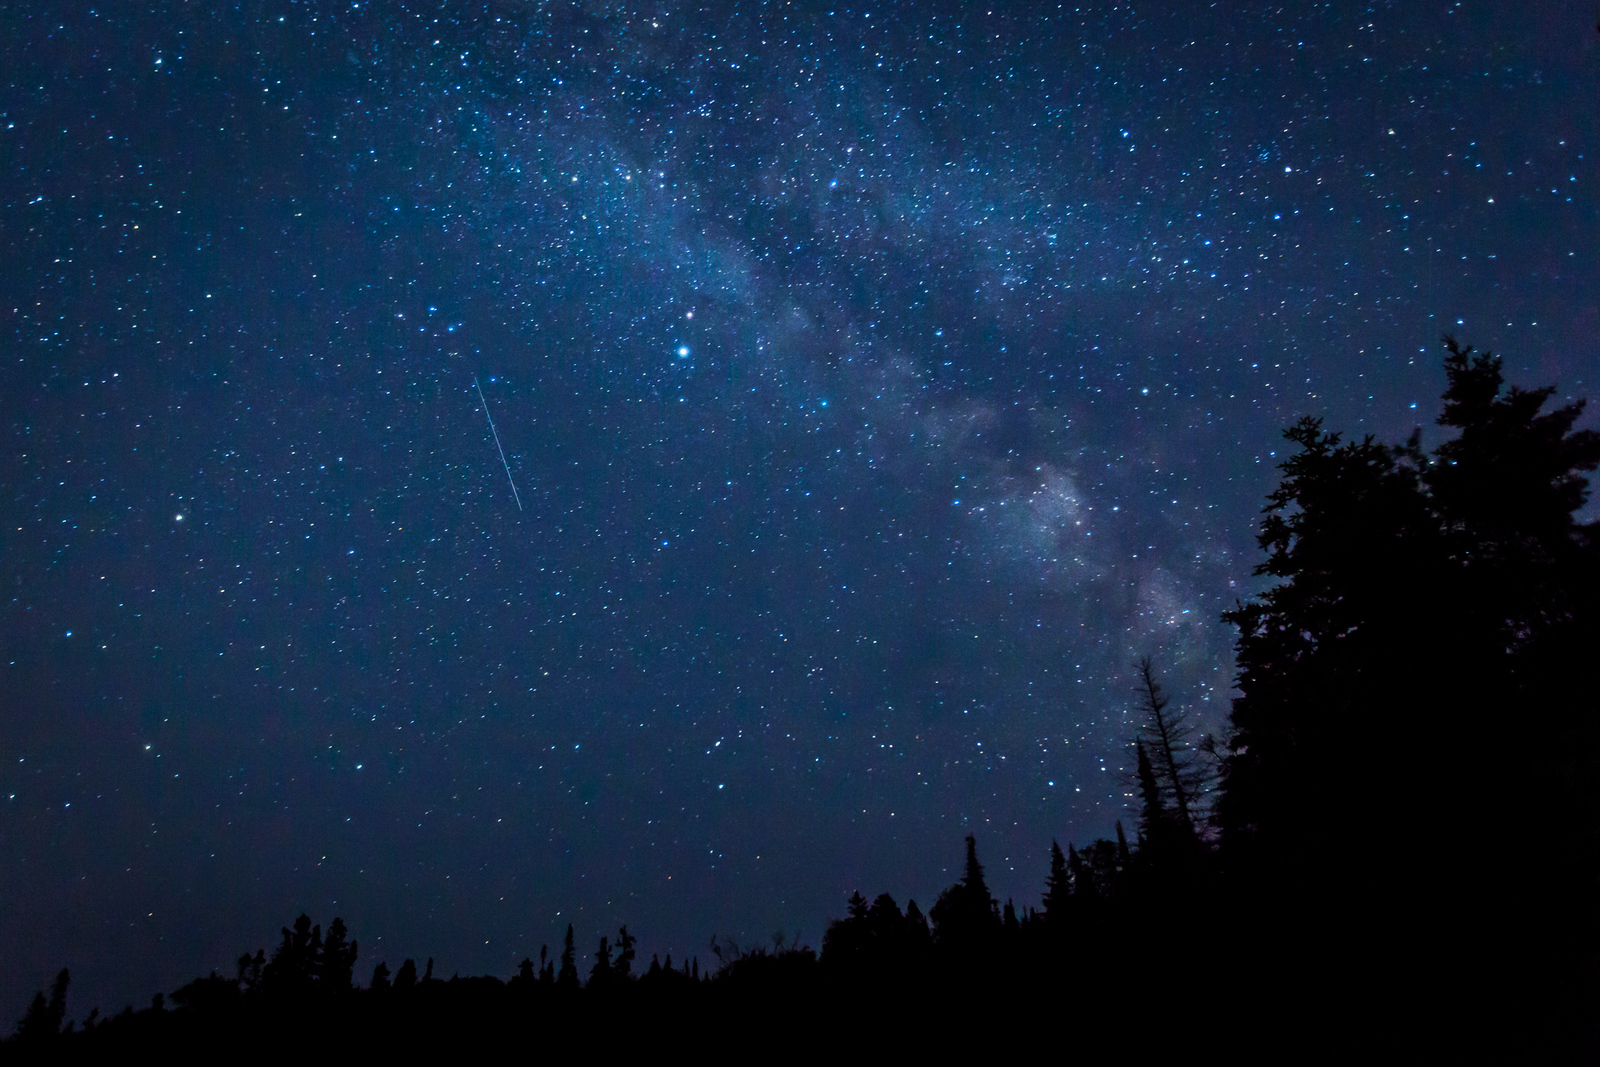 The Milky Way from the Slate Islands on Lake Superior